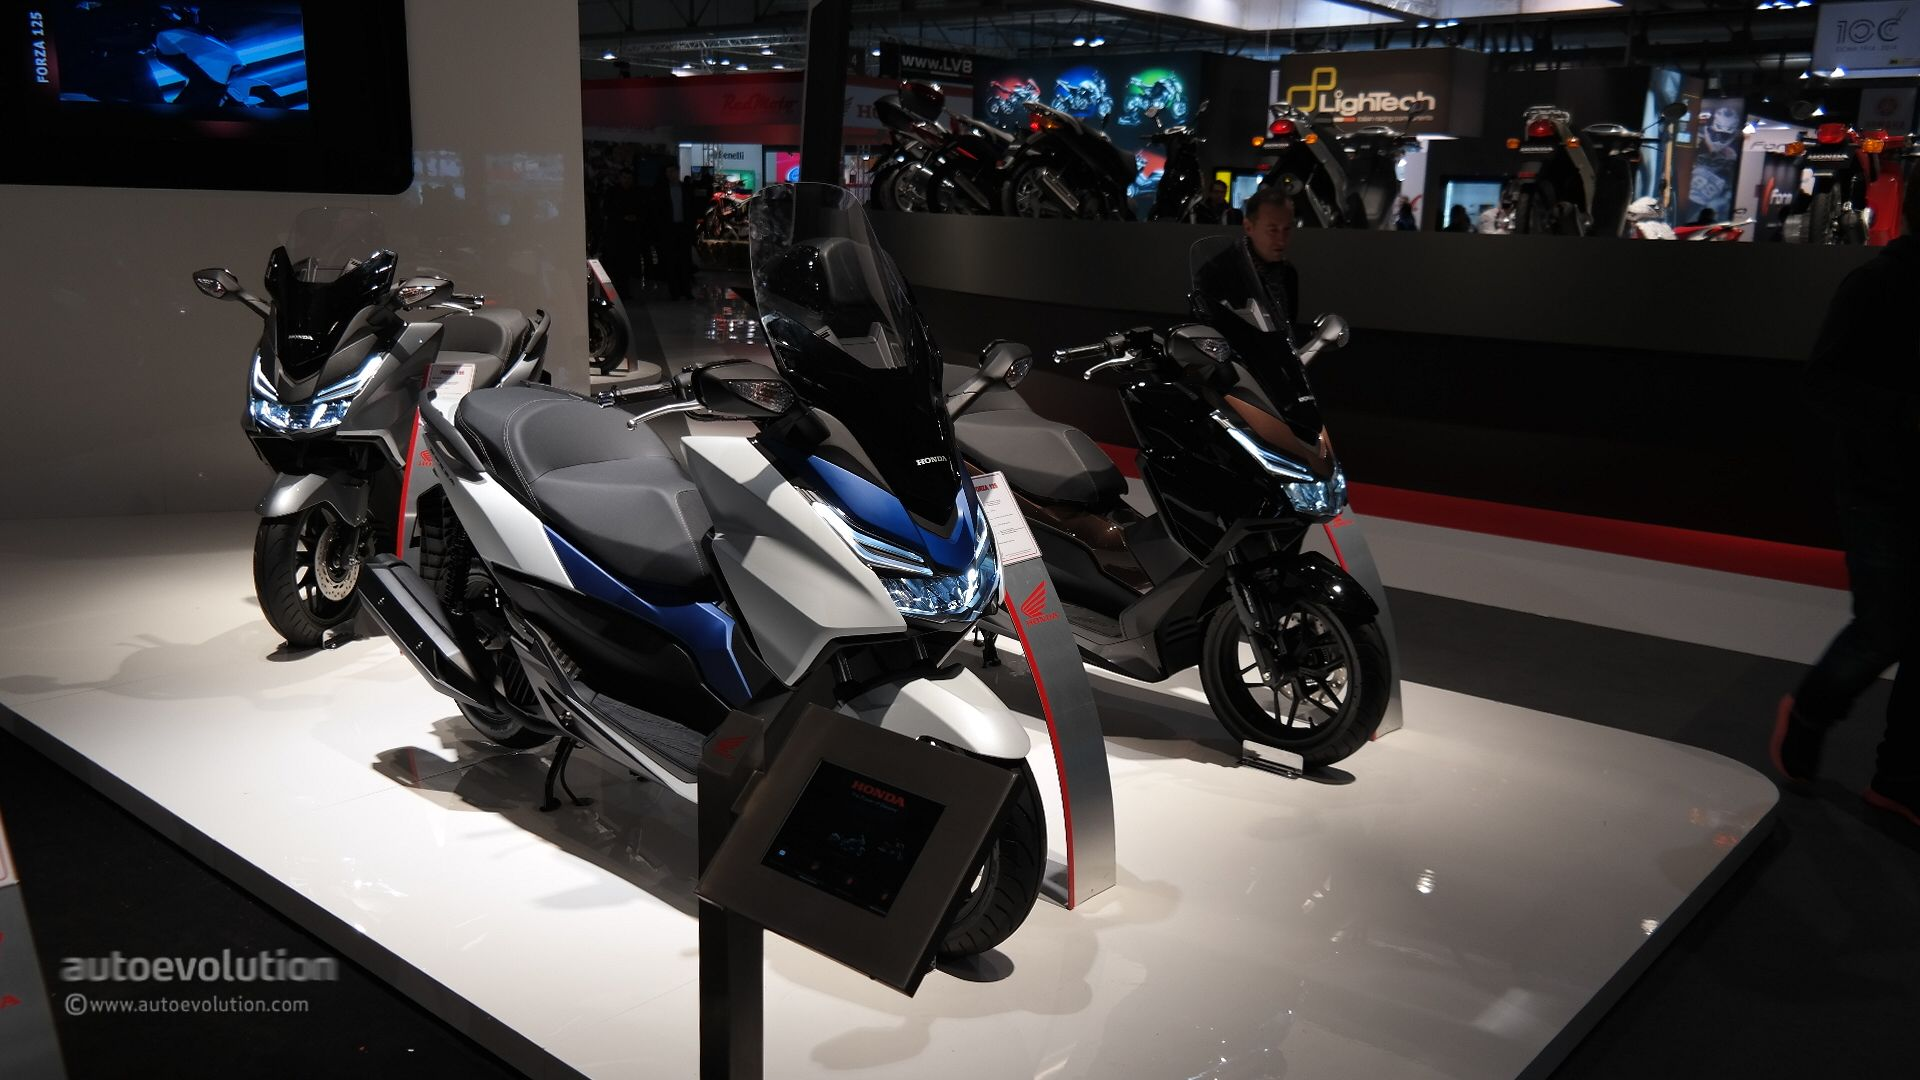 2015 honda forza 125 shows fresh led lights at eicma 2014 live photos autoevolution. Black Bedroom Furniture Sets. Home Design Ideas